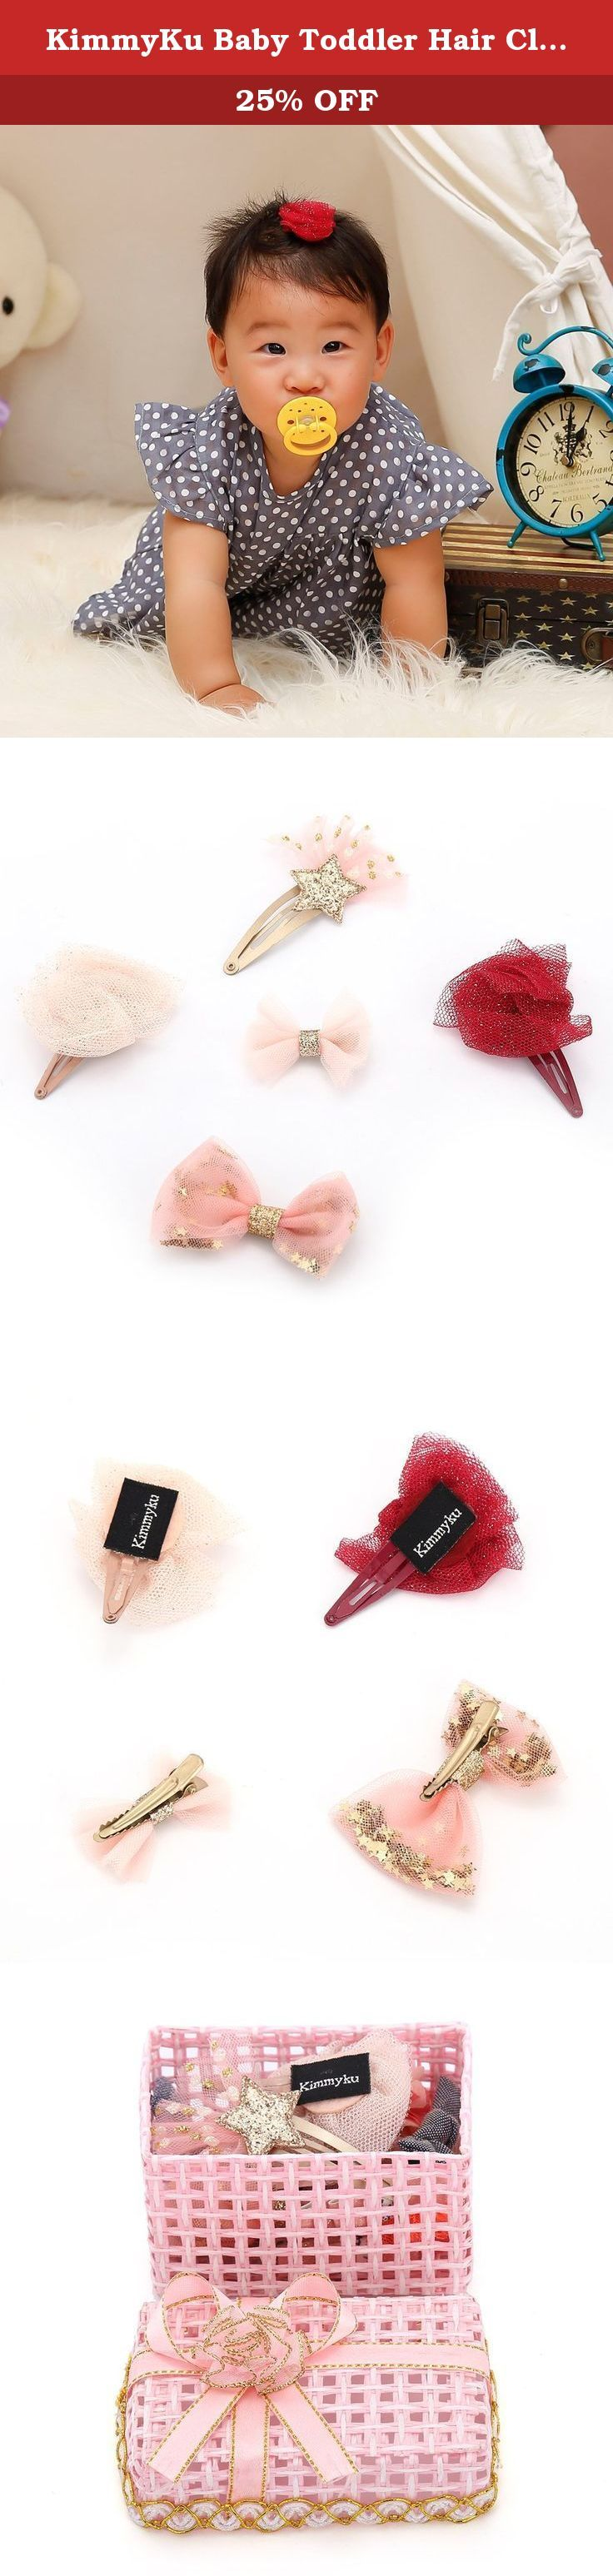 KimmyKu Baby Toddler Hair Clips Hair Bows Accessories Barrettes For Infant Baby girls. KimmyKu Non Slip Small Tiny Glitter Pretty Baby Childs Kids infants newborn Toddlers little Girls Boutique Barrettes Headpieces Accessories Simple and Neat Designs ,All of them are Pretty in Their Own Way they are perfect when you are styling your girls for photographer ,fun,princess birthday party,wedding occasion Excellent Quality Materials With NON Toxic Glue Quantity Per Order 14 pcs each set,but…